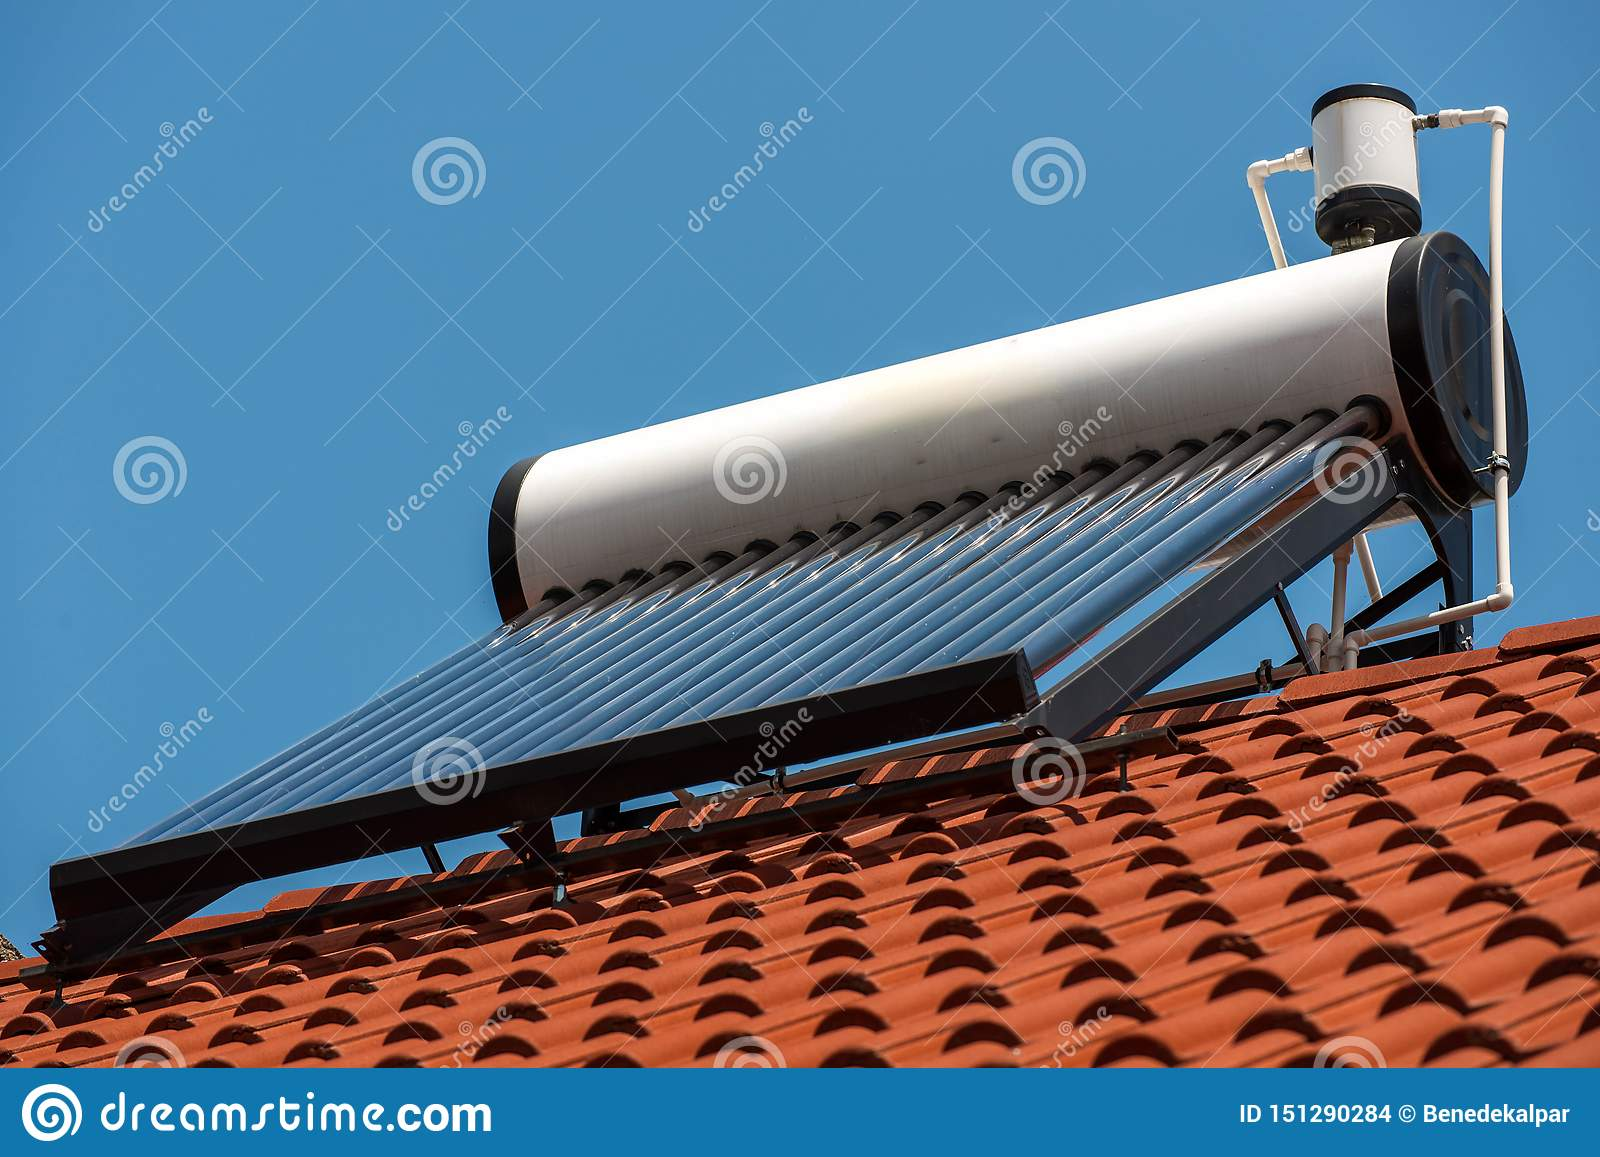 Solar water heater boiler on rooftop close up shot